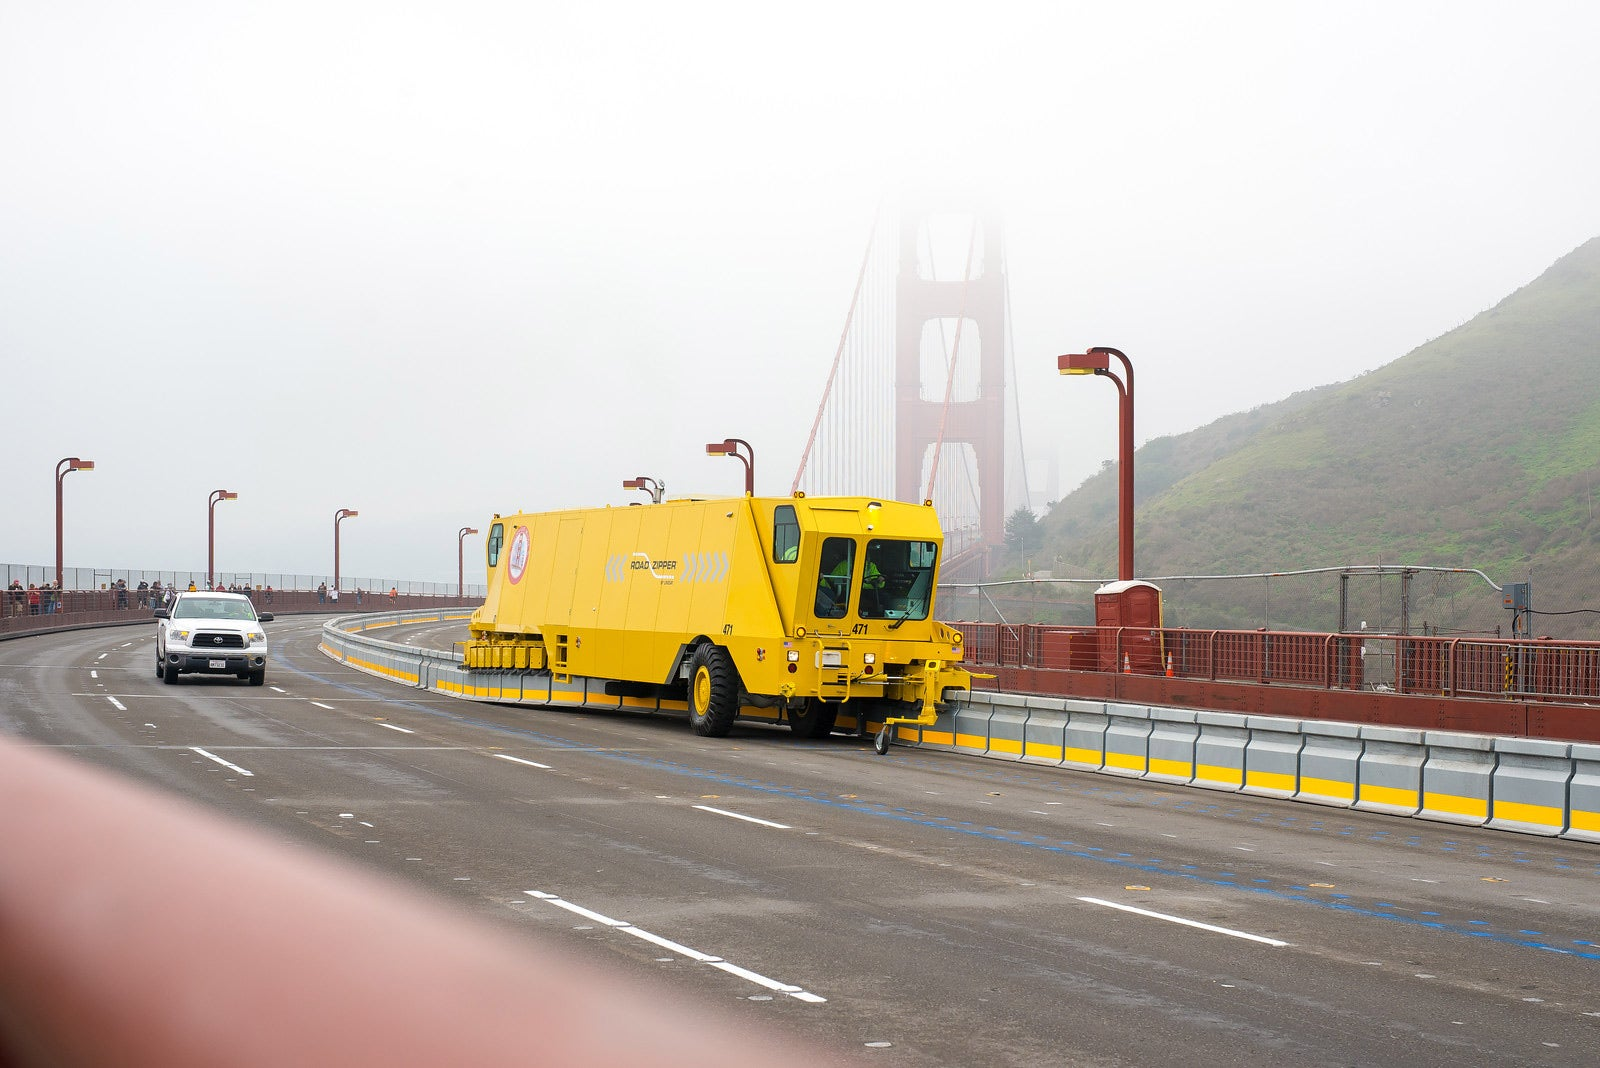 Golden Gate Bridge Closure and Median Barrier Installation